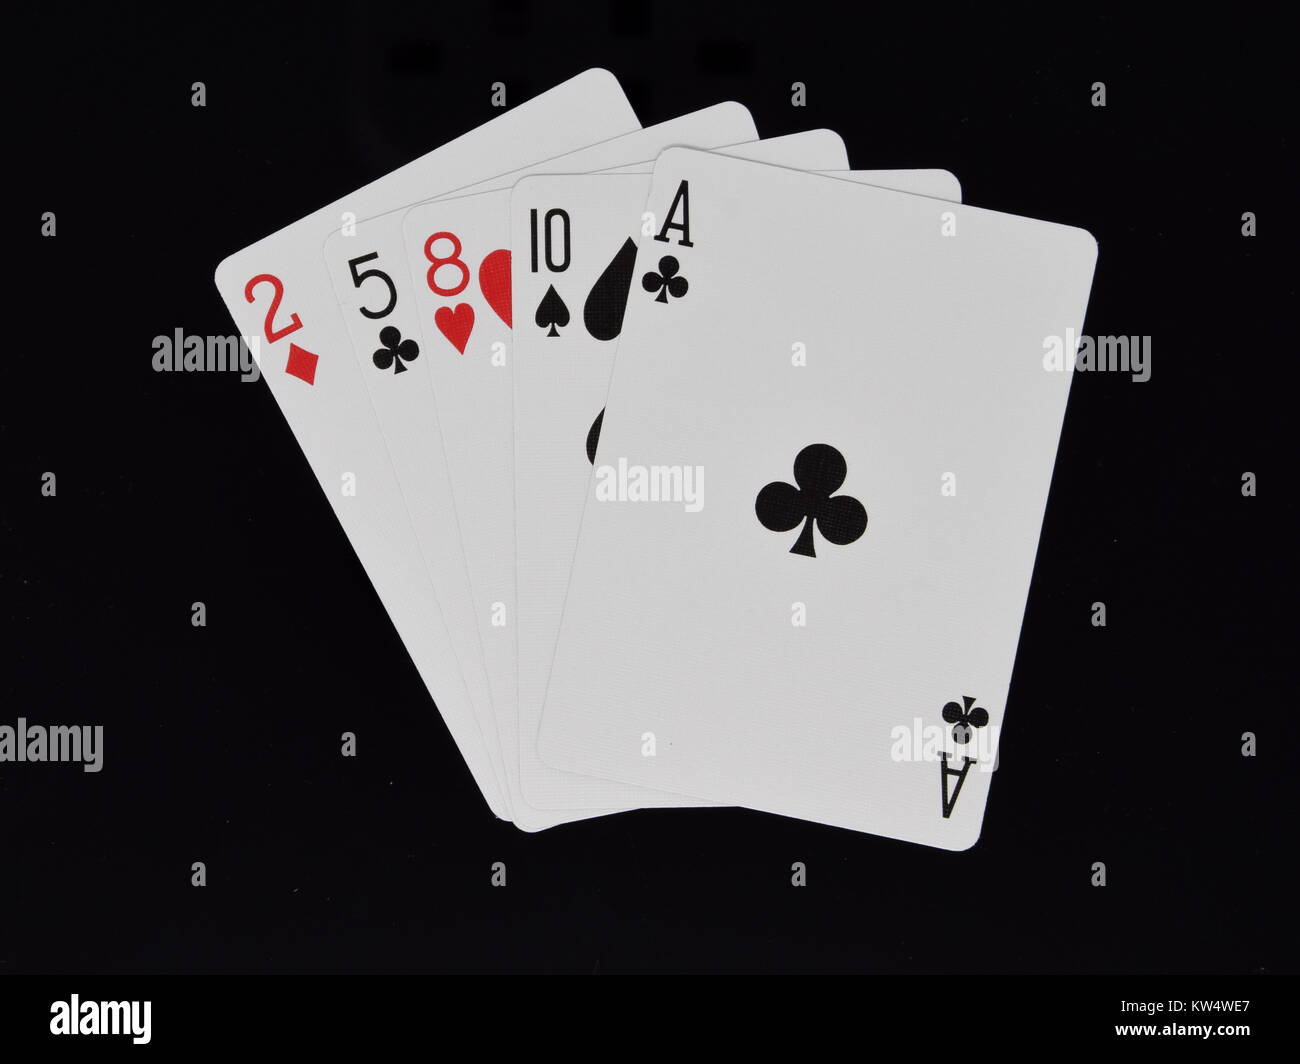 Ace High hand in poker card game - Stock Image